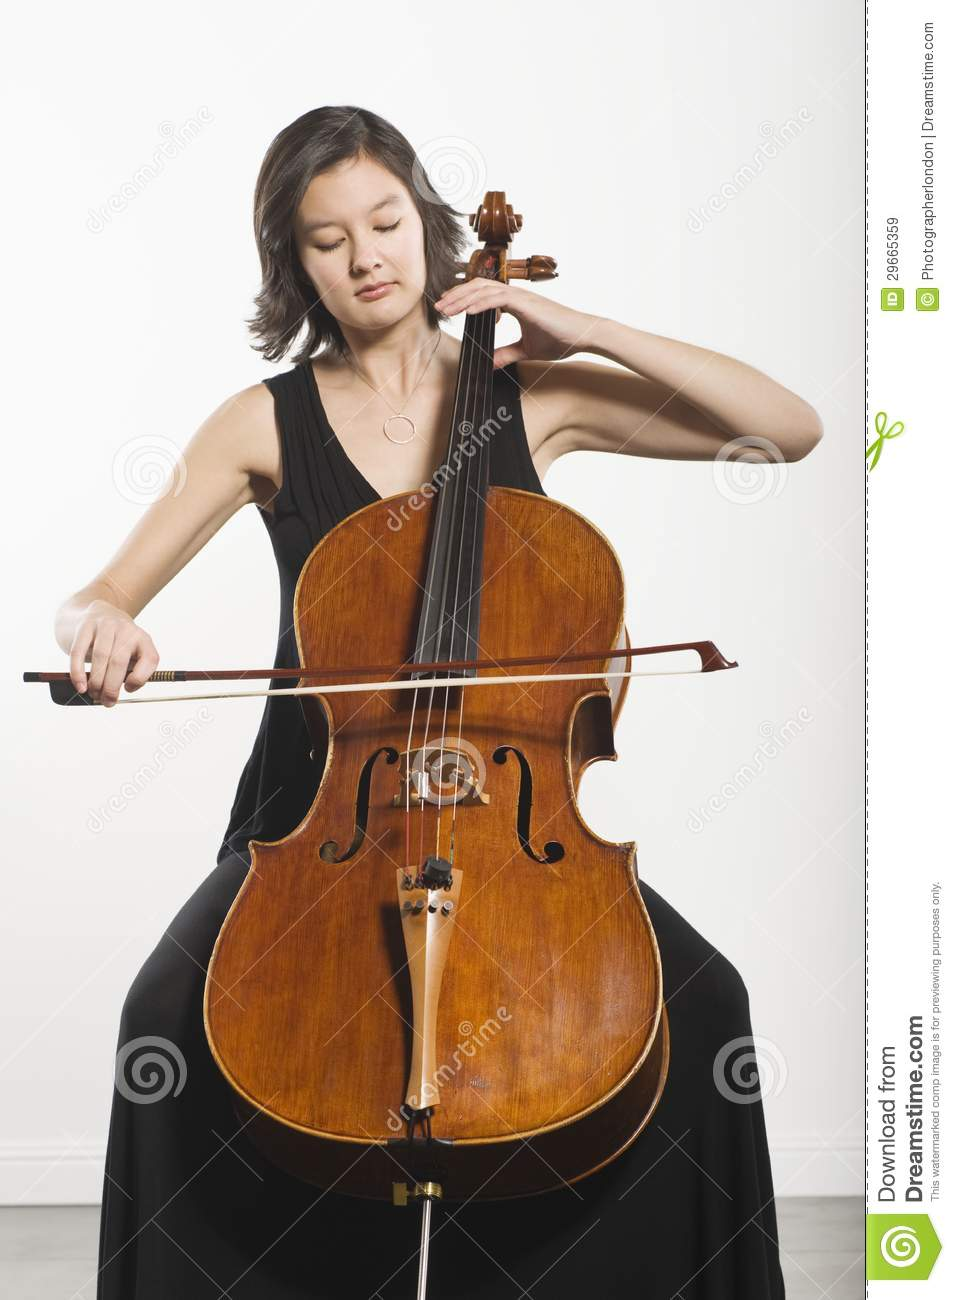 Royalty Free Stock Images Woman Playing Cello Image29665359 on Situation Clipart